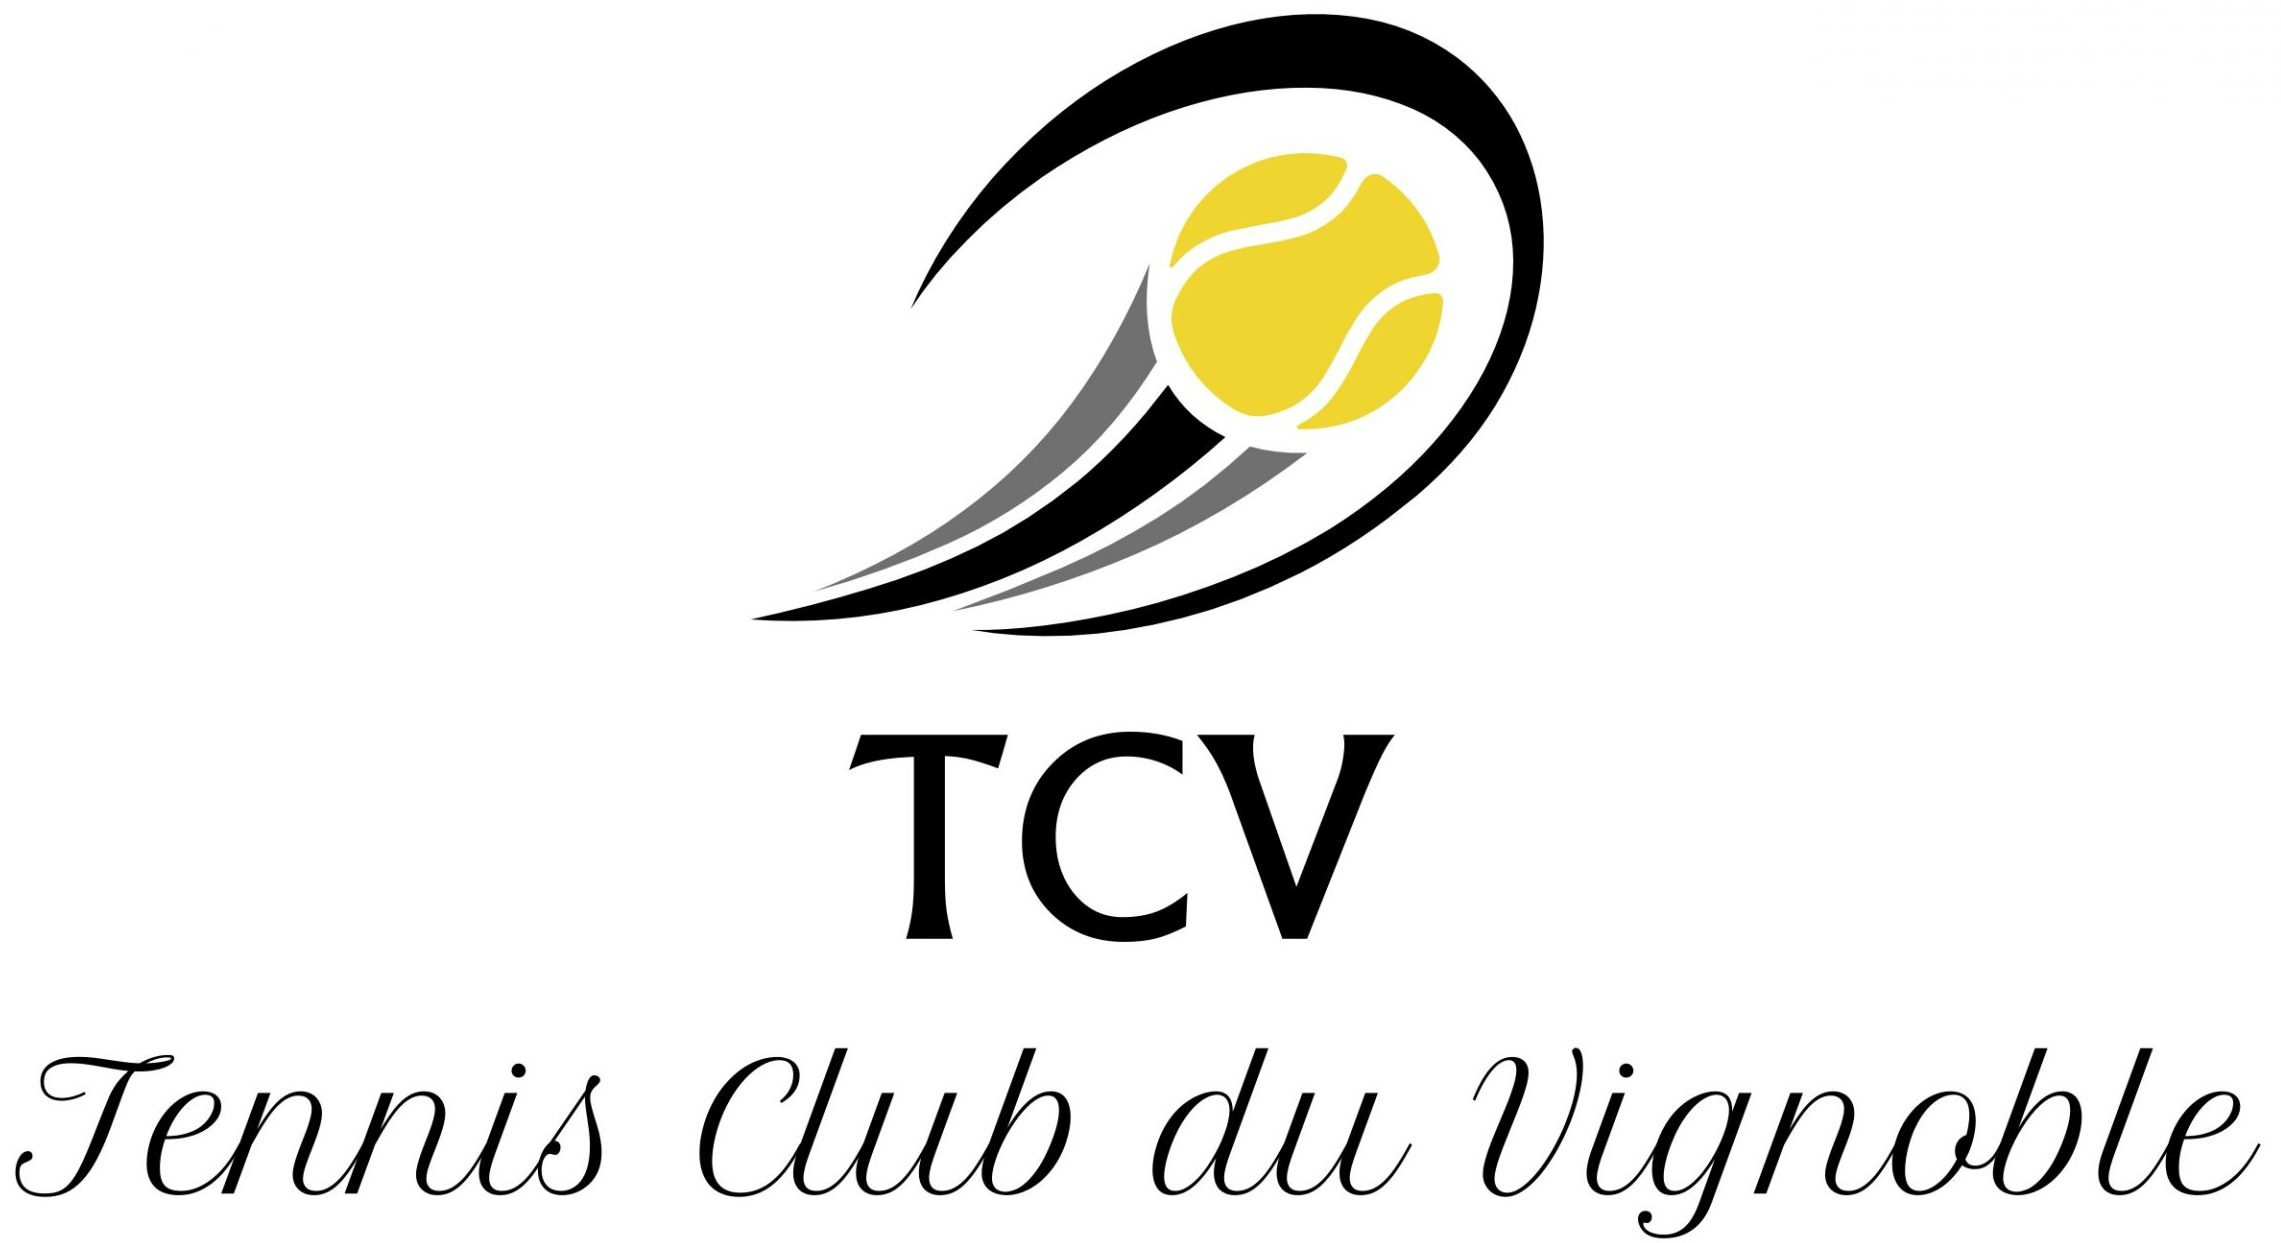 Tennis Club du Vignoble